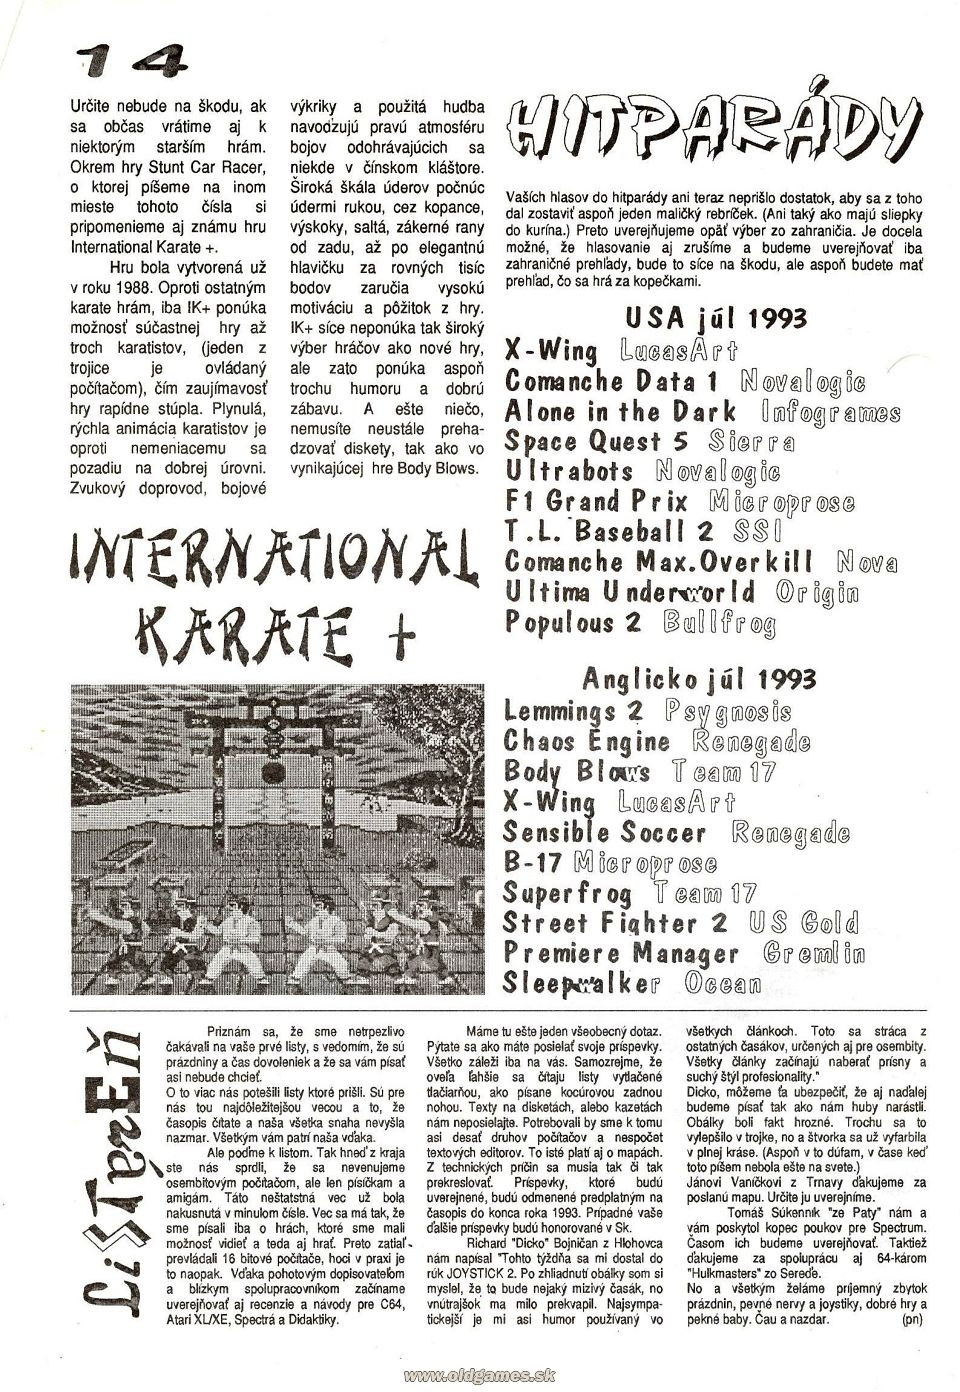 International Karate +, Hitparáda